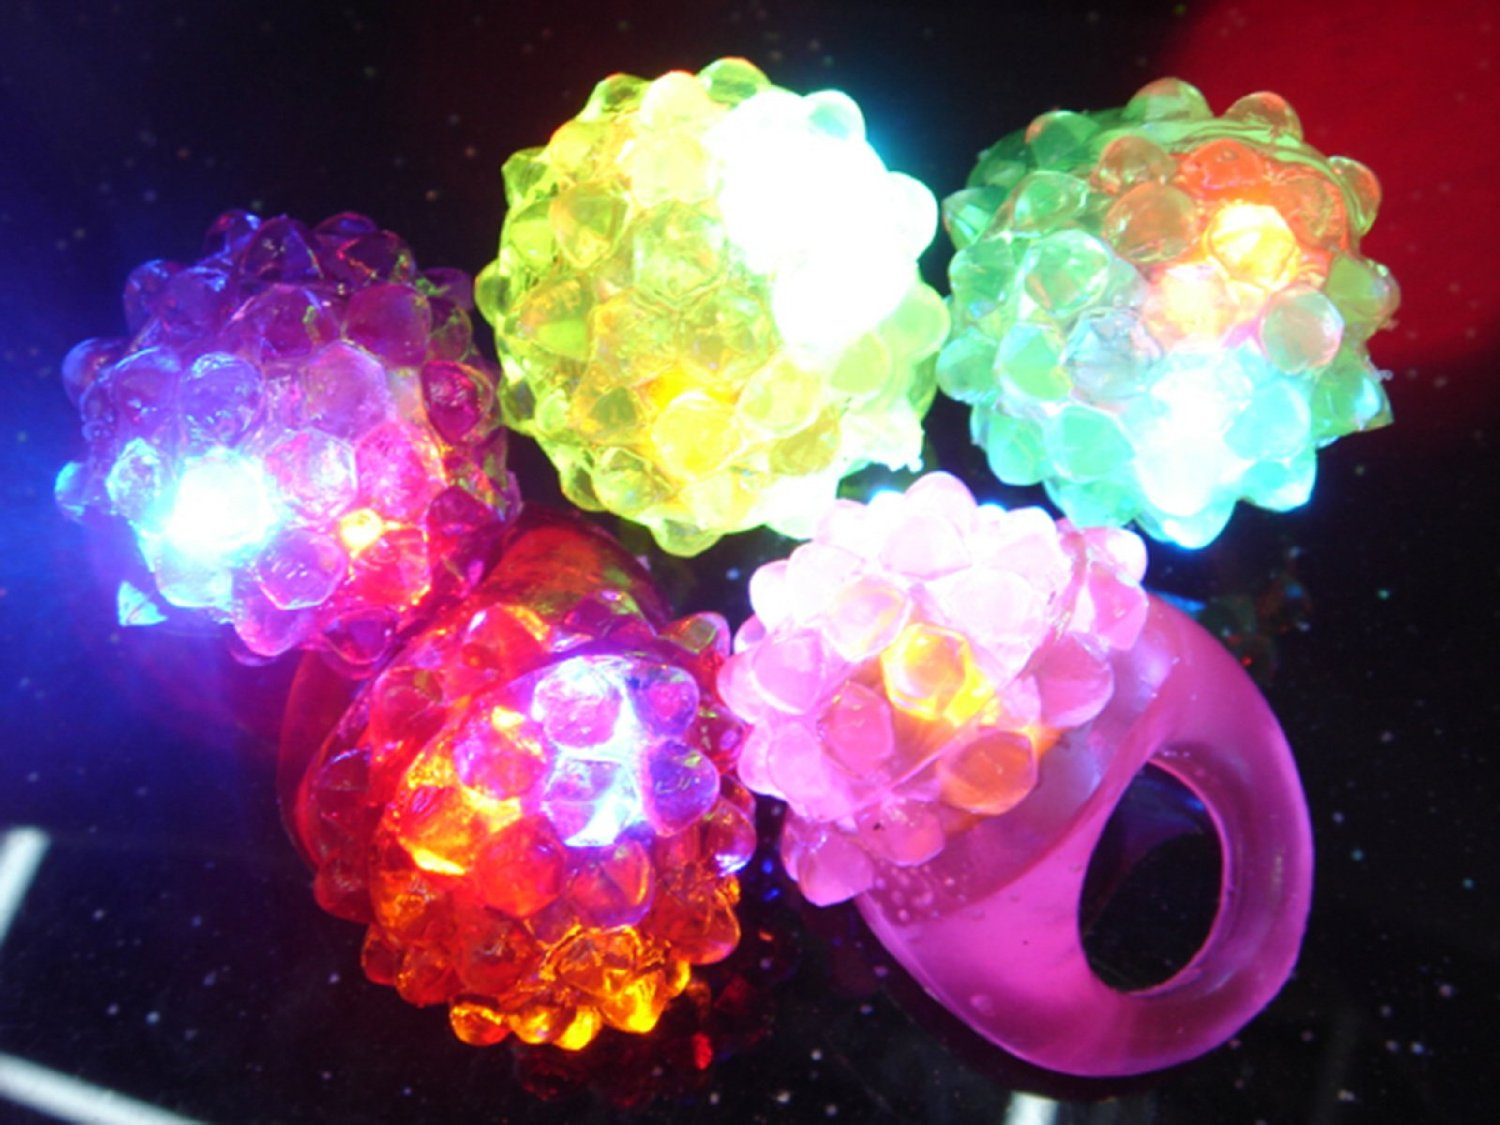 Flashing Led Bumpy Ring (Pack of 72)